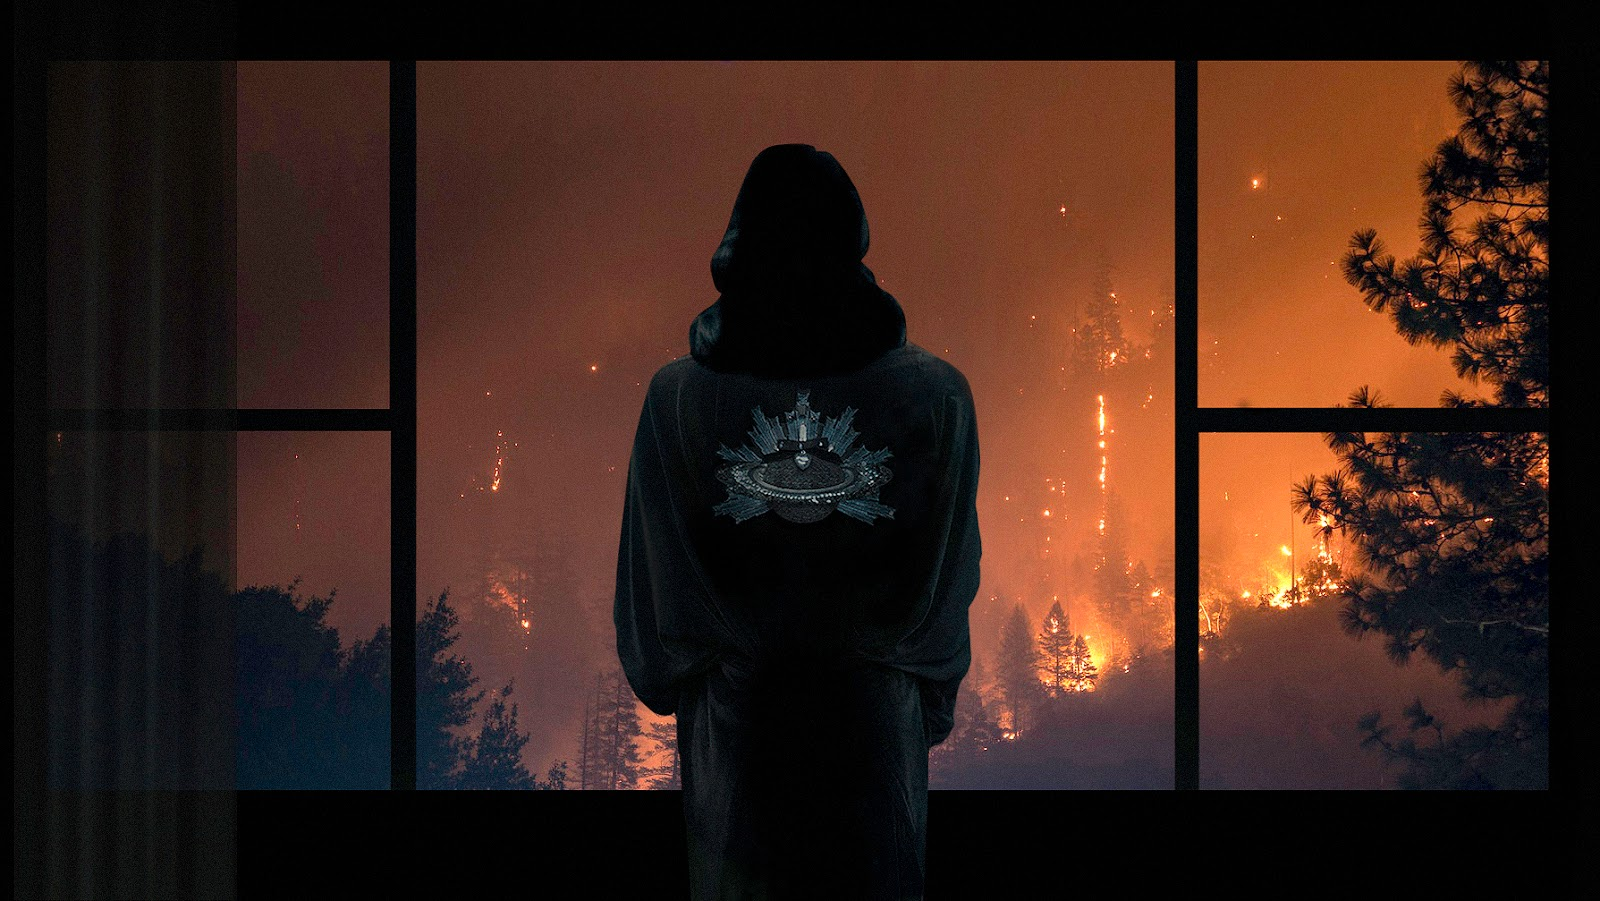 Iva Sokovic wearing her Saturn robe, drinking martini and overlooking a forest fire